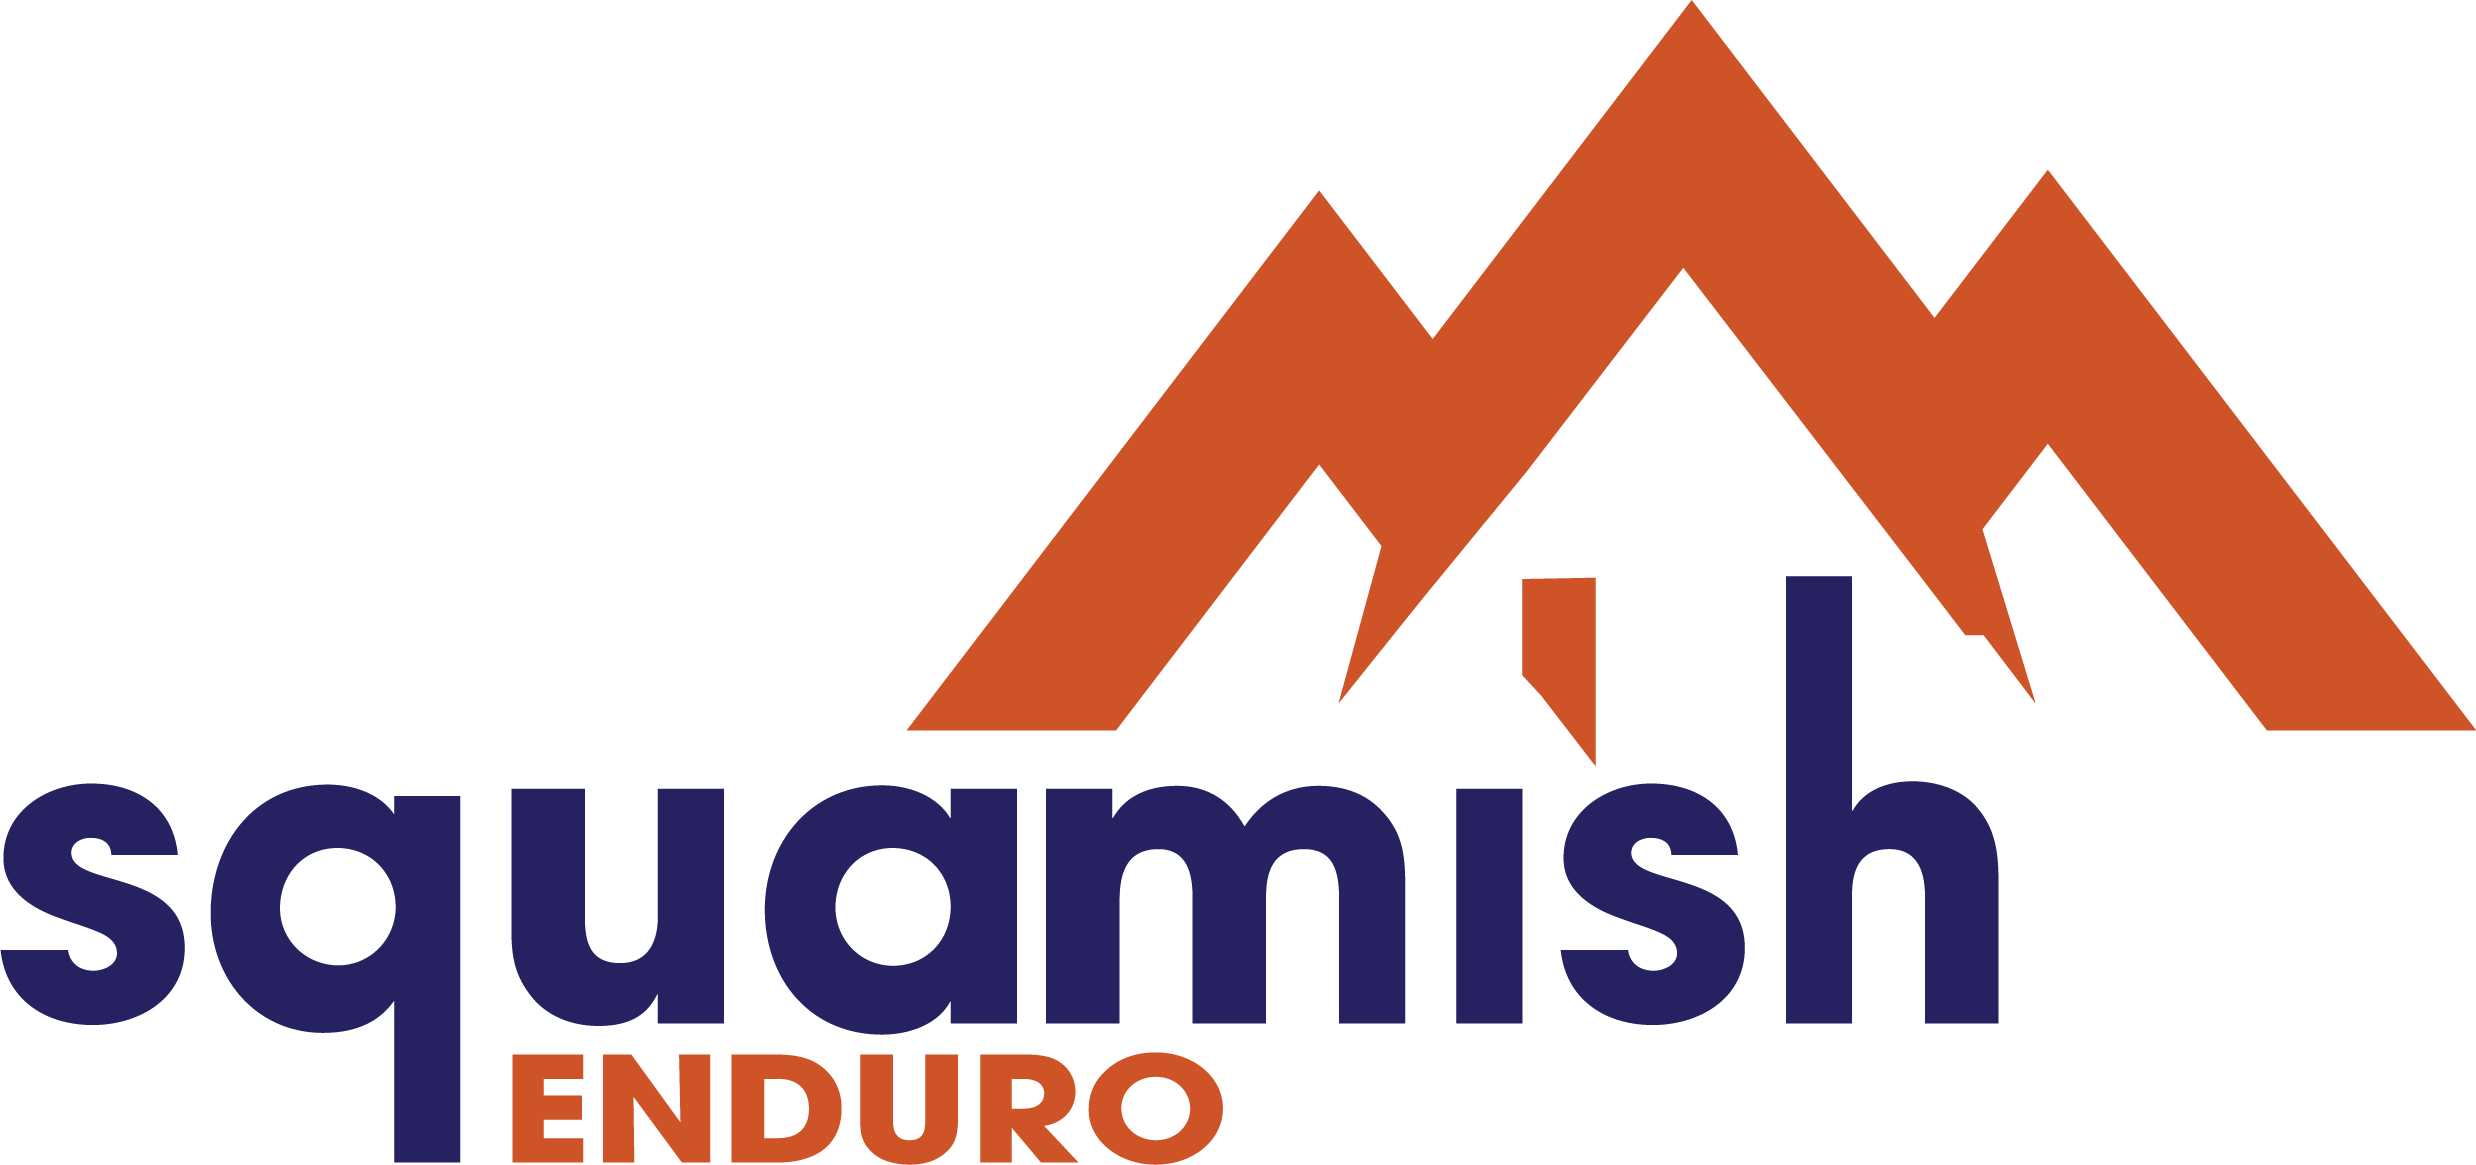 Squamish Enduro